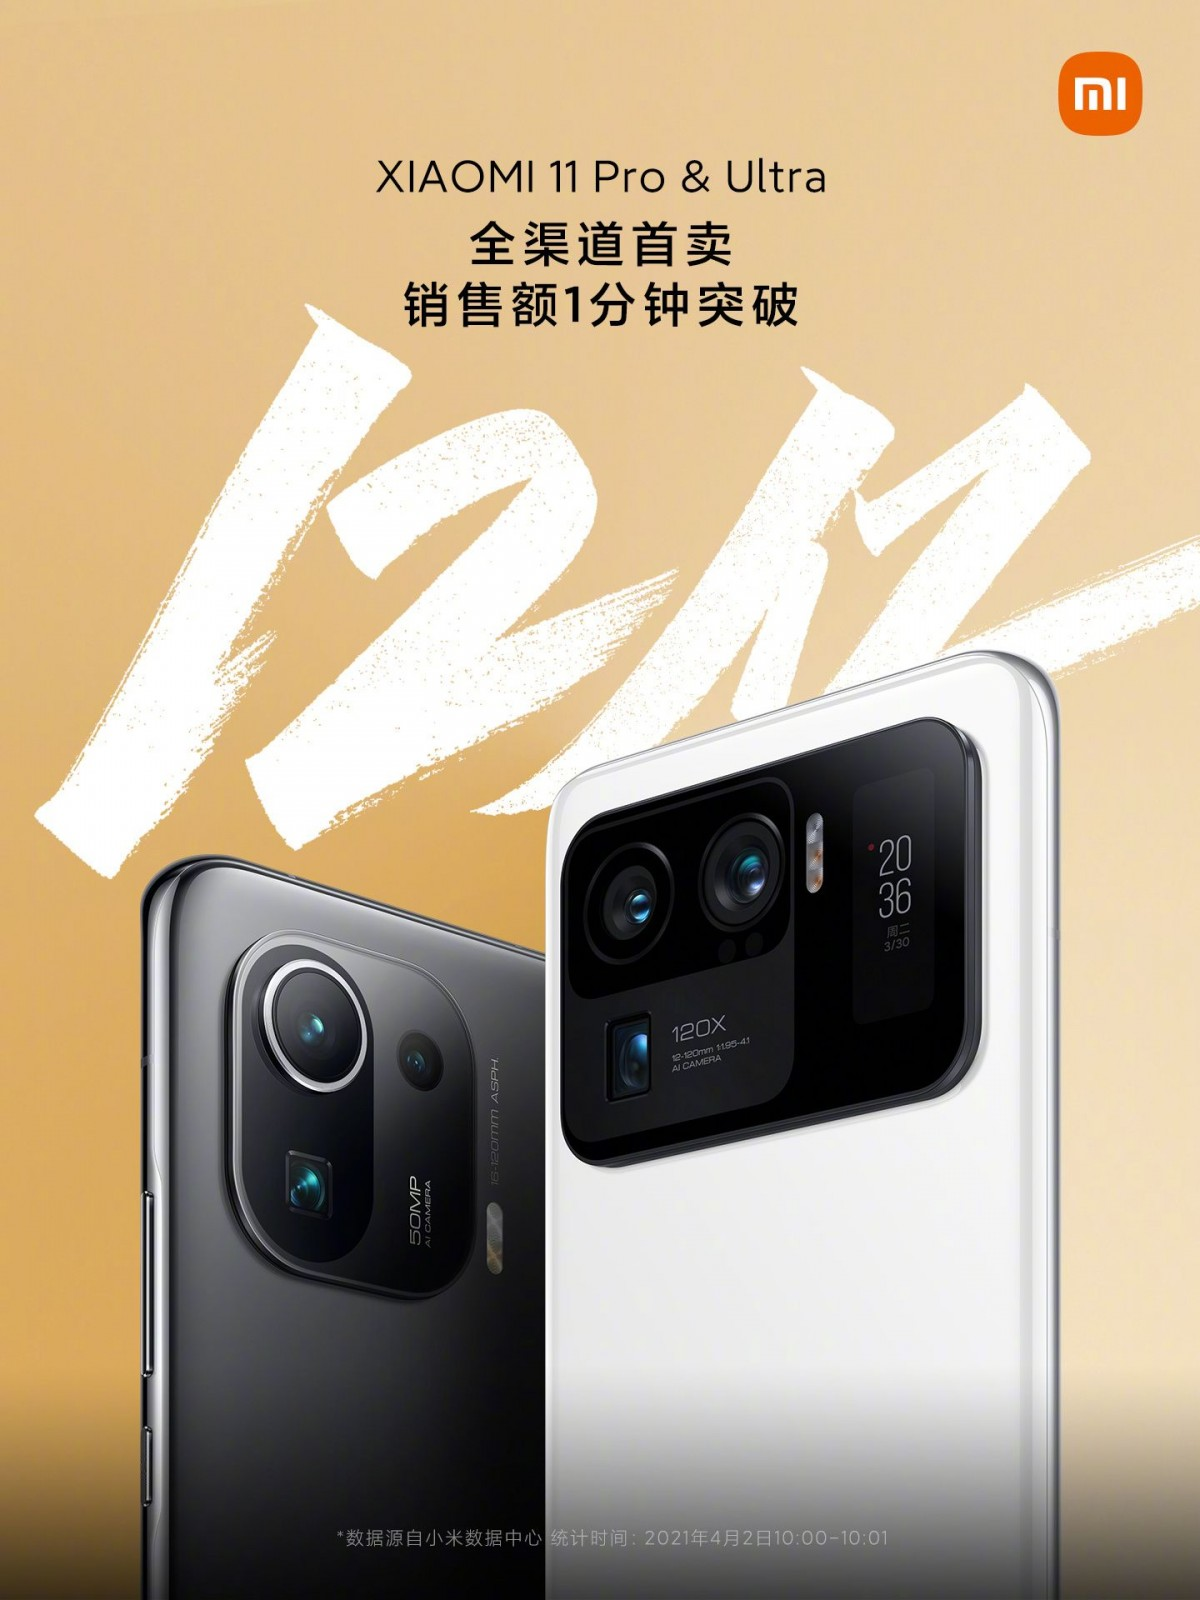 Xiaomi Mi 11 Ultra and Mi 11 Pro generate CNY 1.2b in a minute